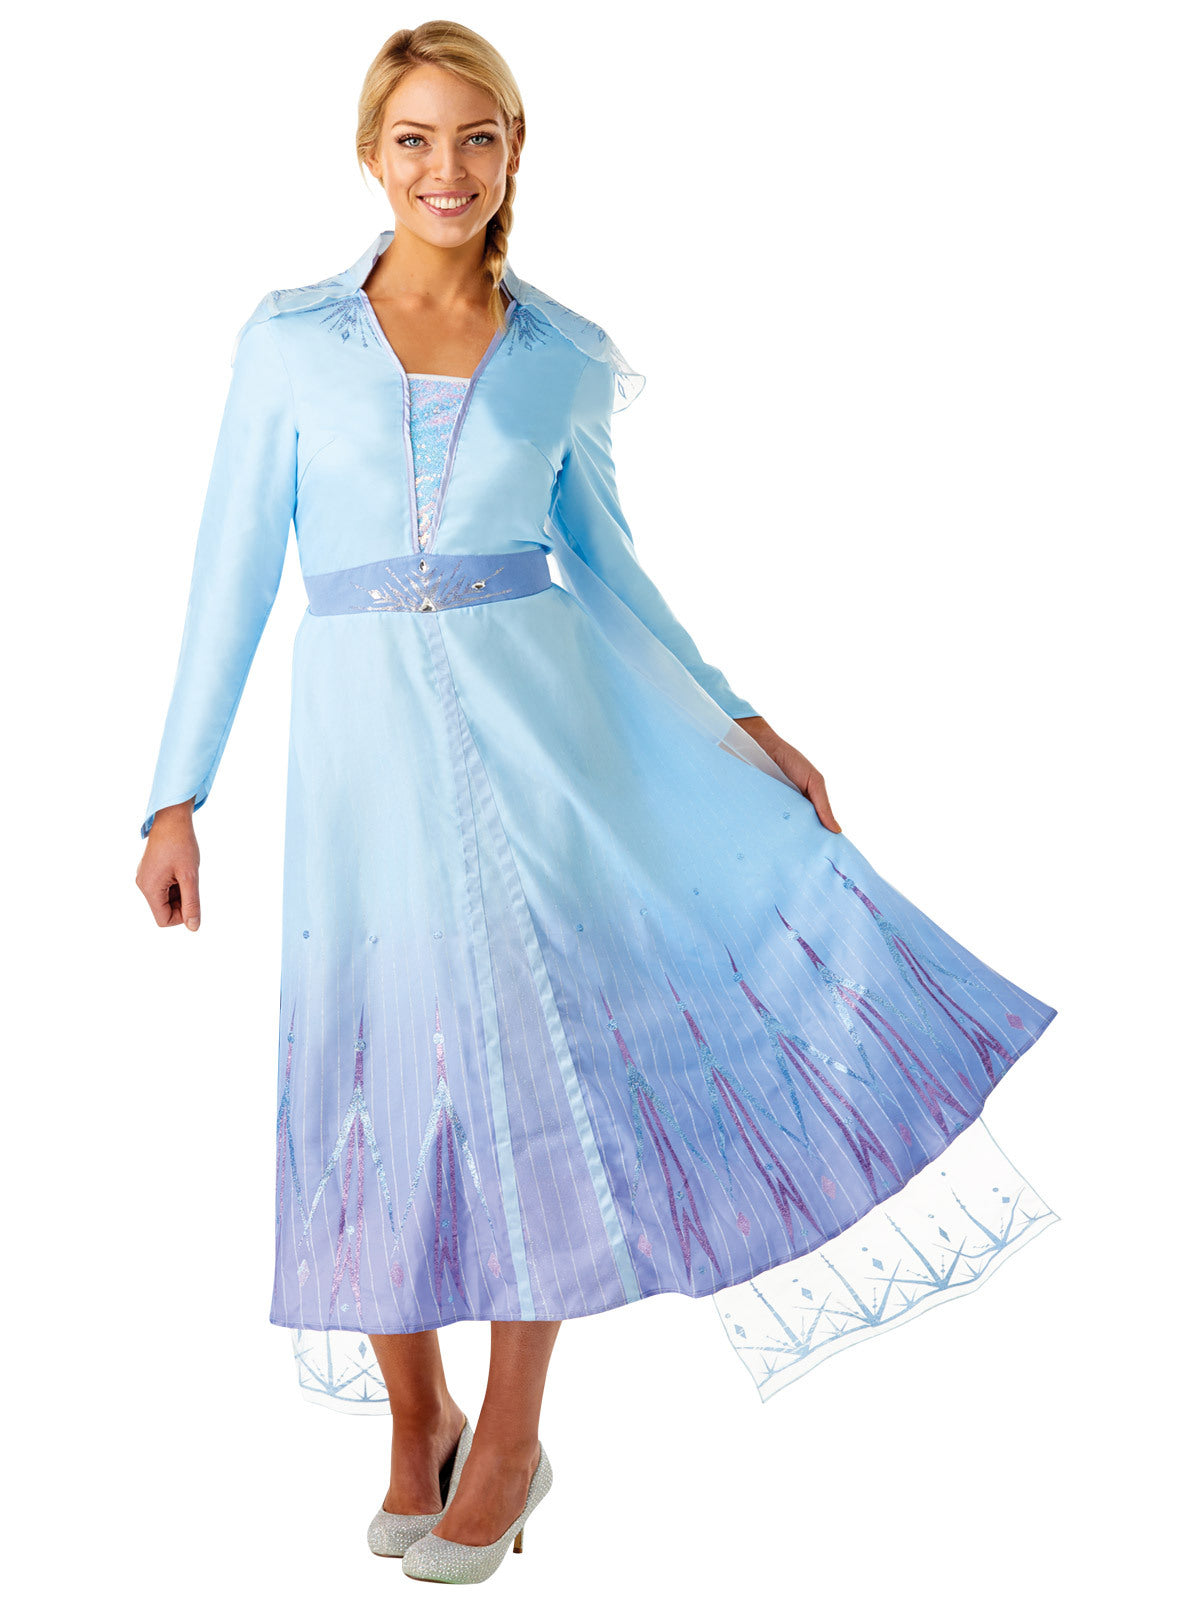 Elsa Deluxe Frozen 2 Costume - Buy Online Only